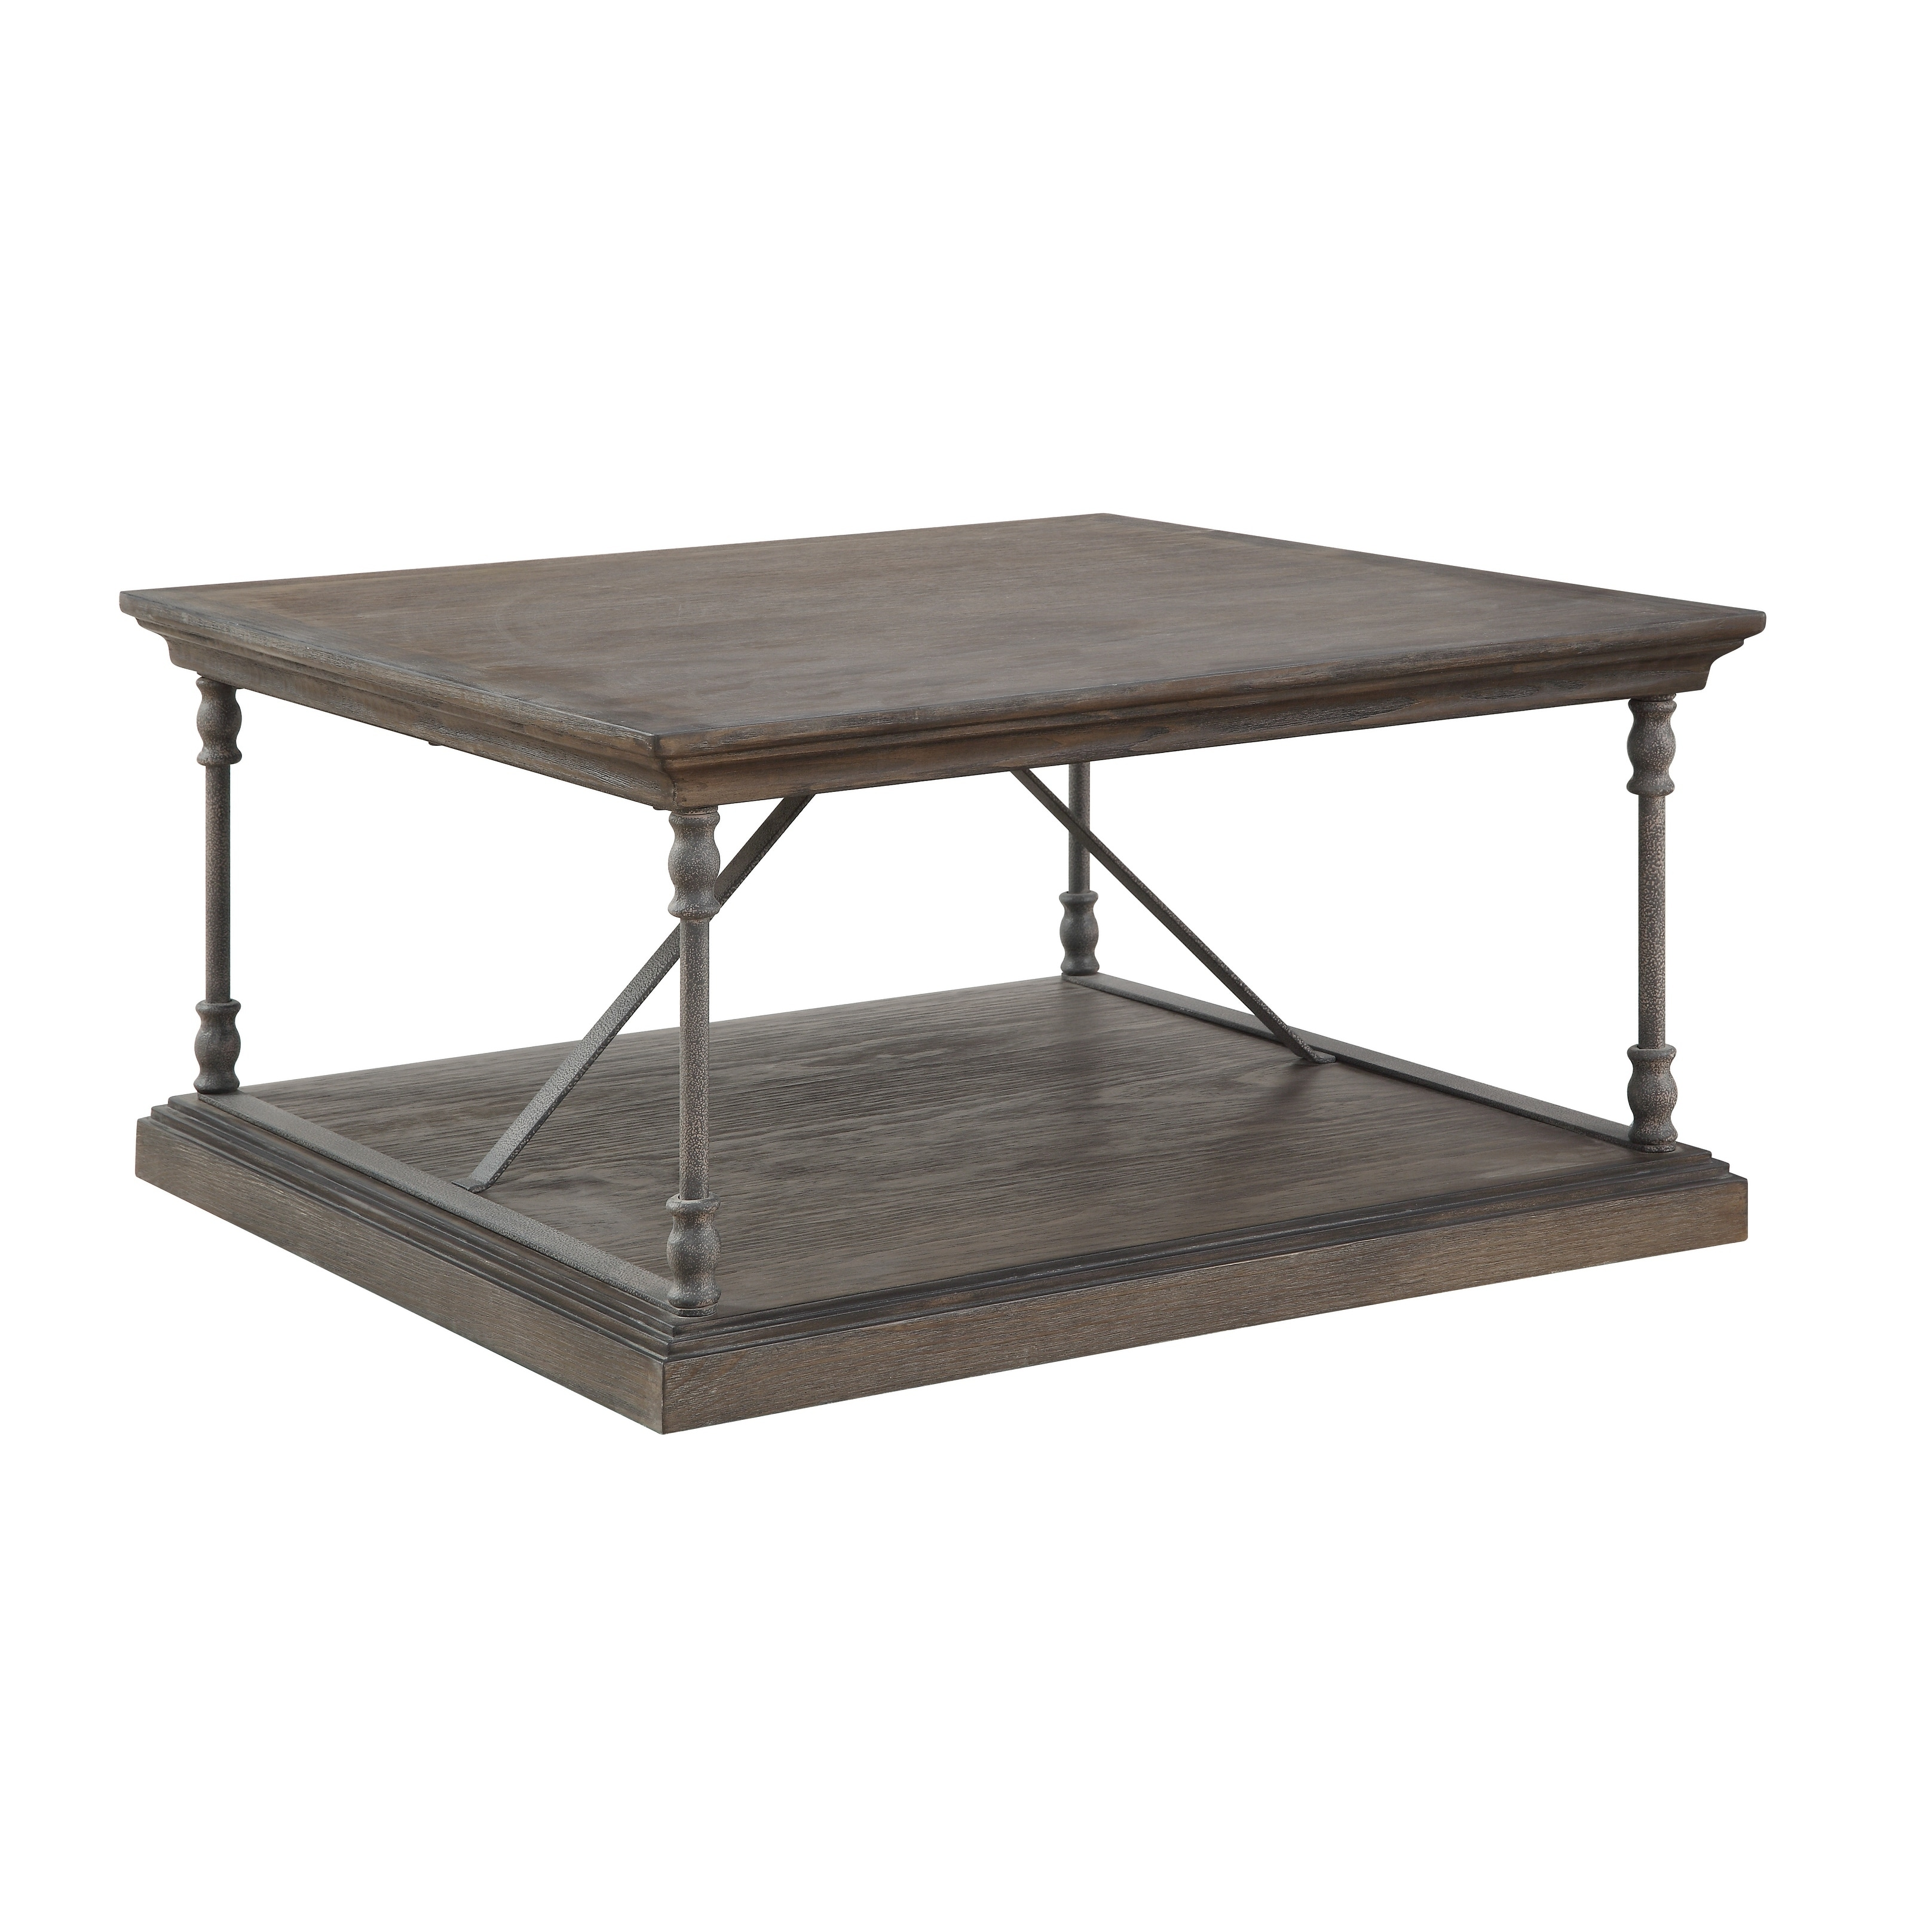 ba61474cb0d4 Shop Corbin Square Cocktail Table - Free Shipping Today - Overstock ...